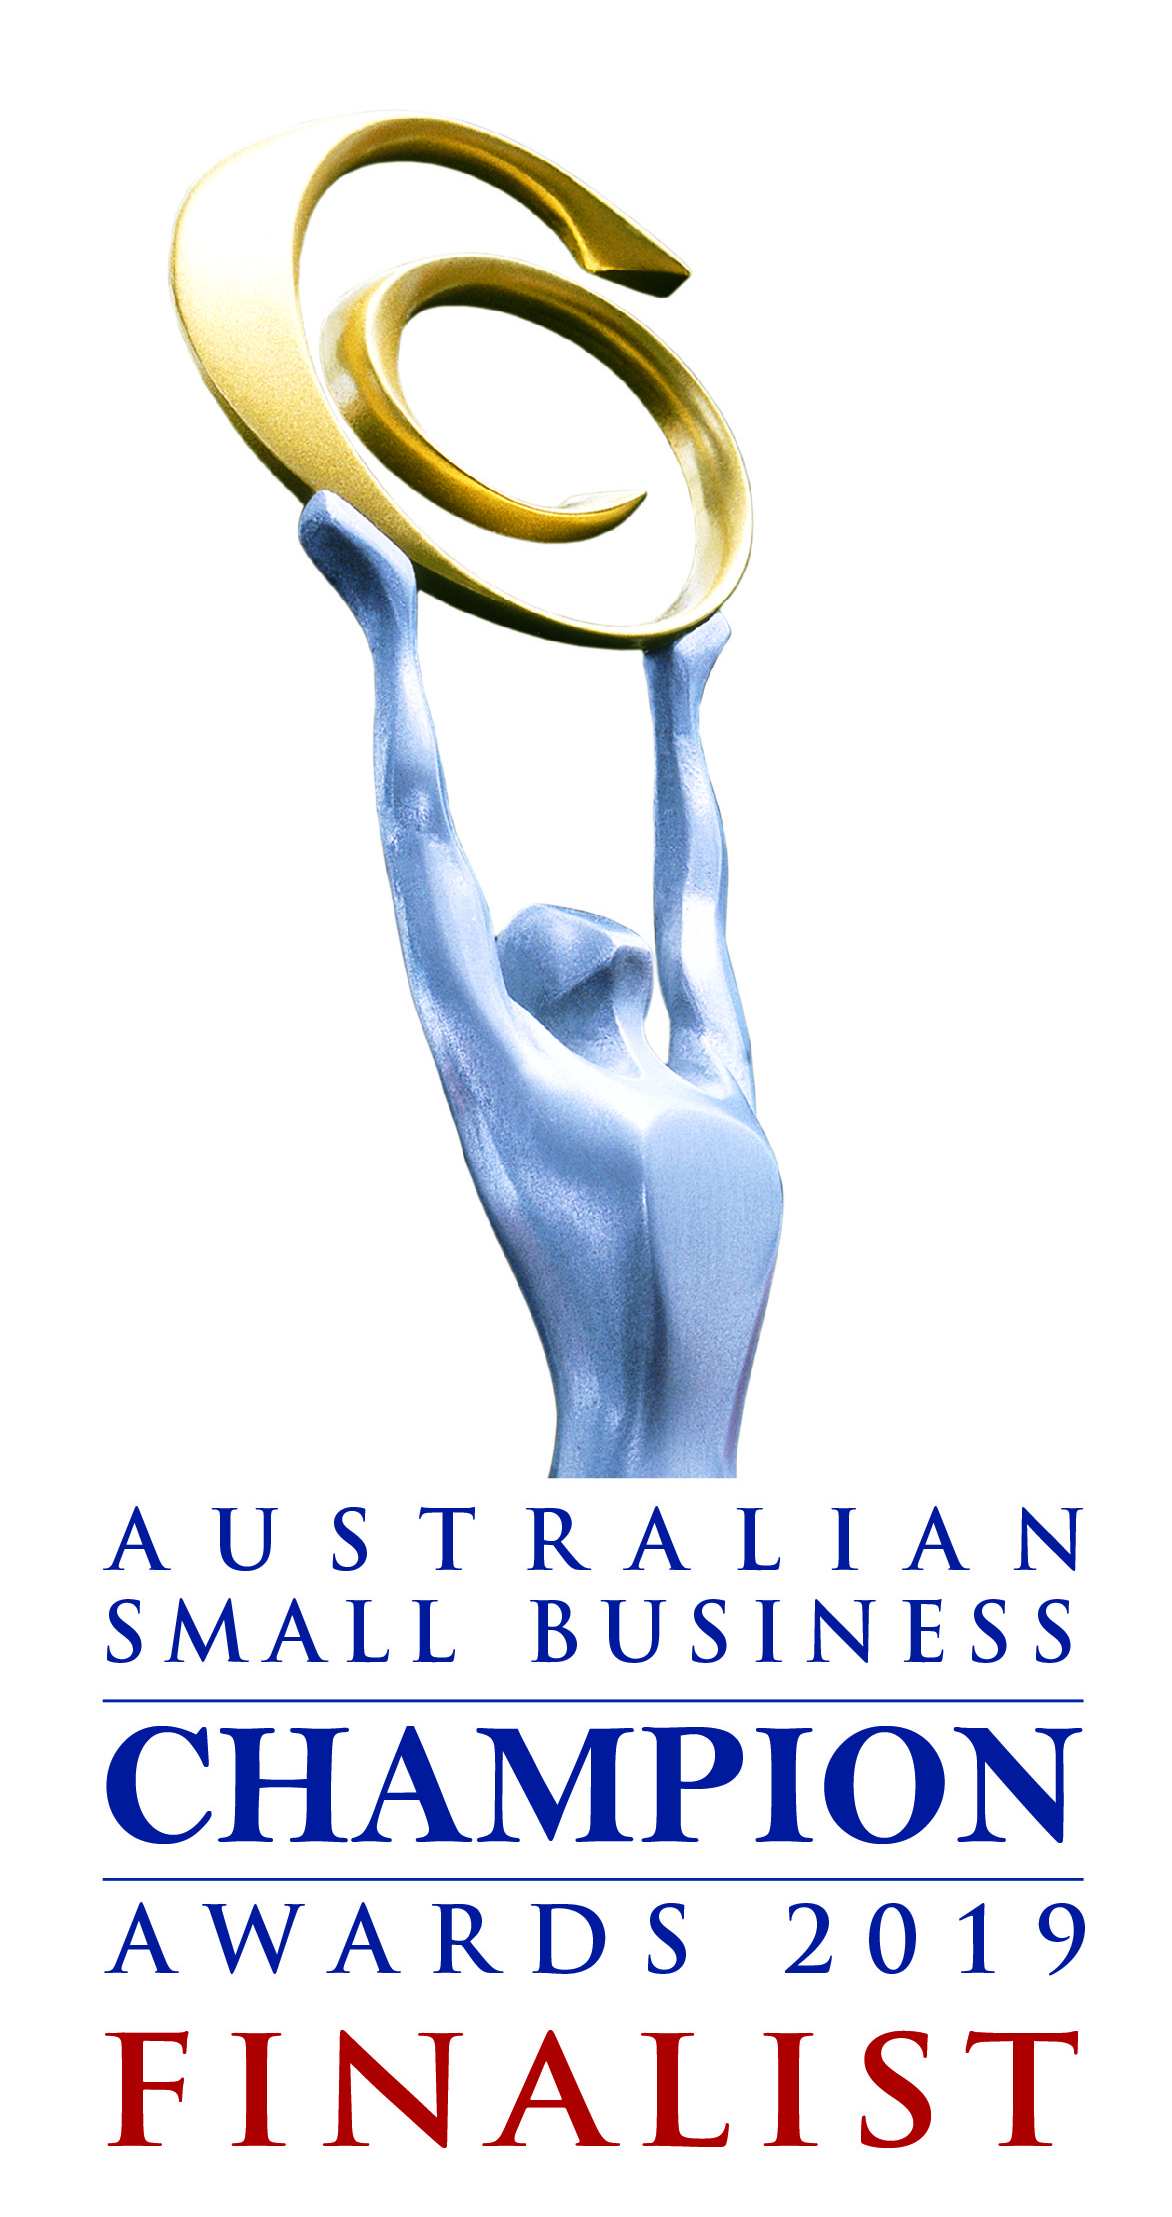 Australian Small Business Champion Award